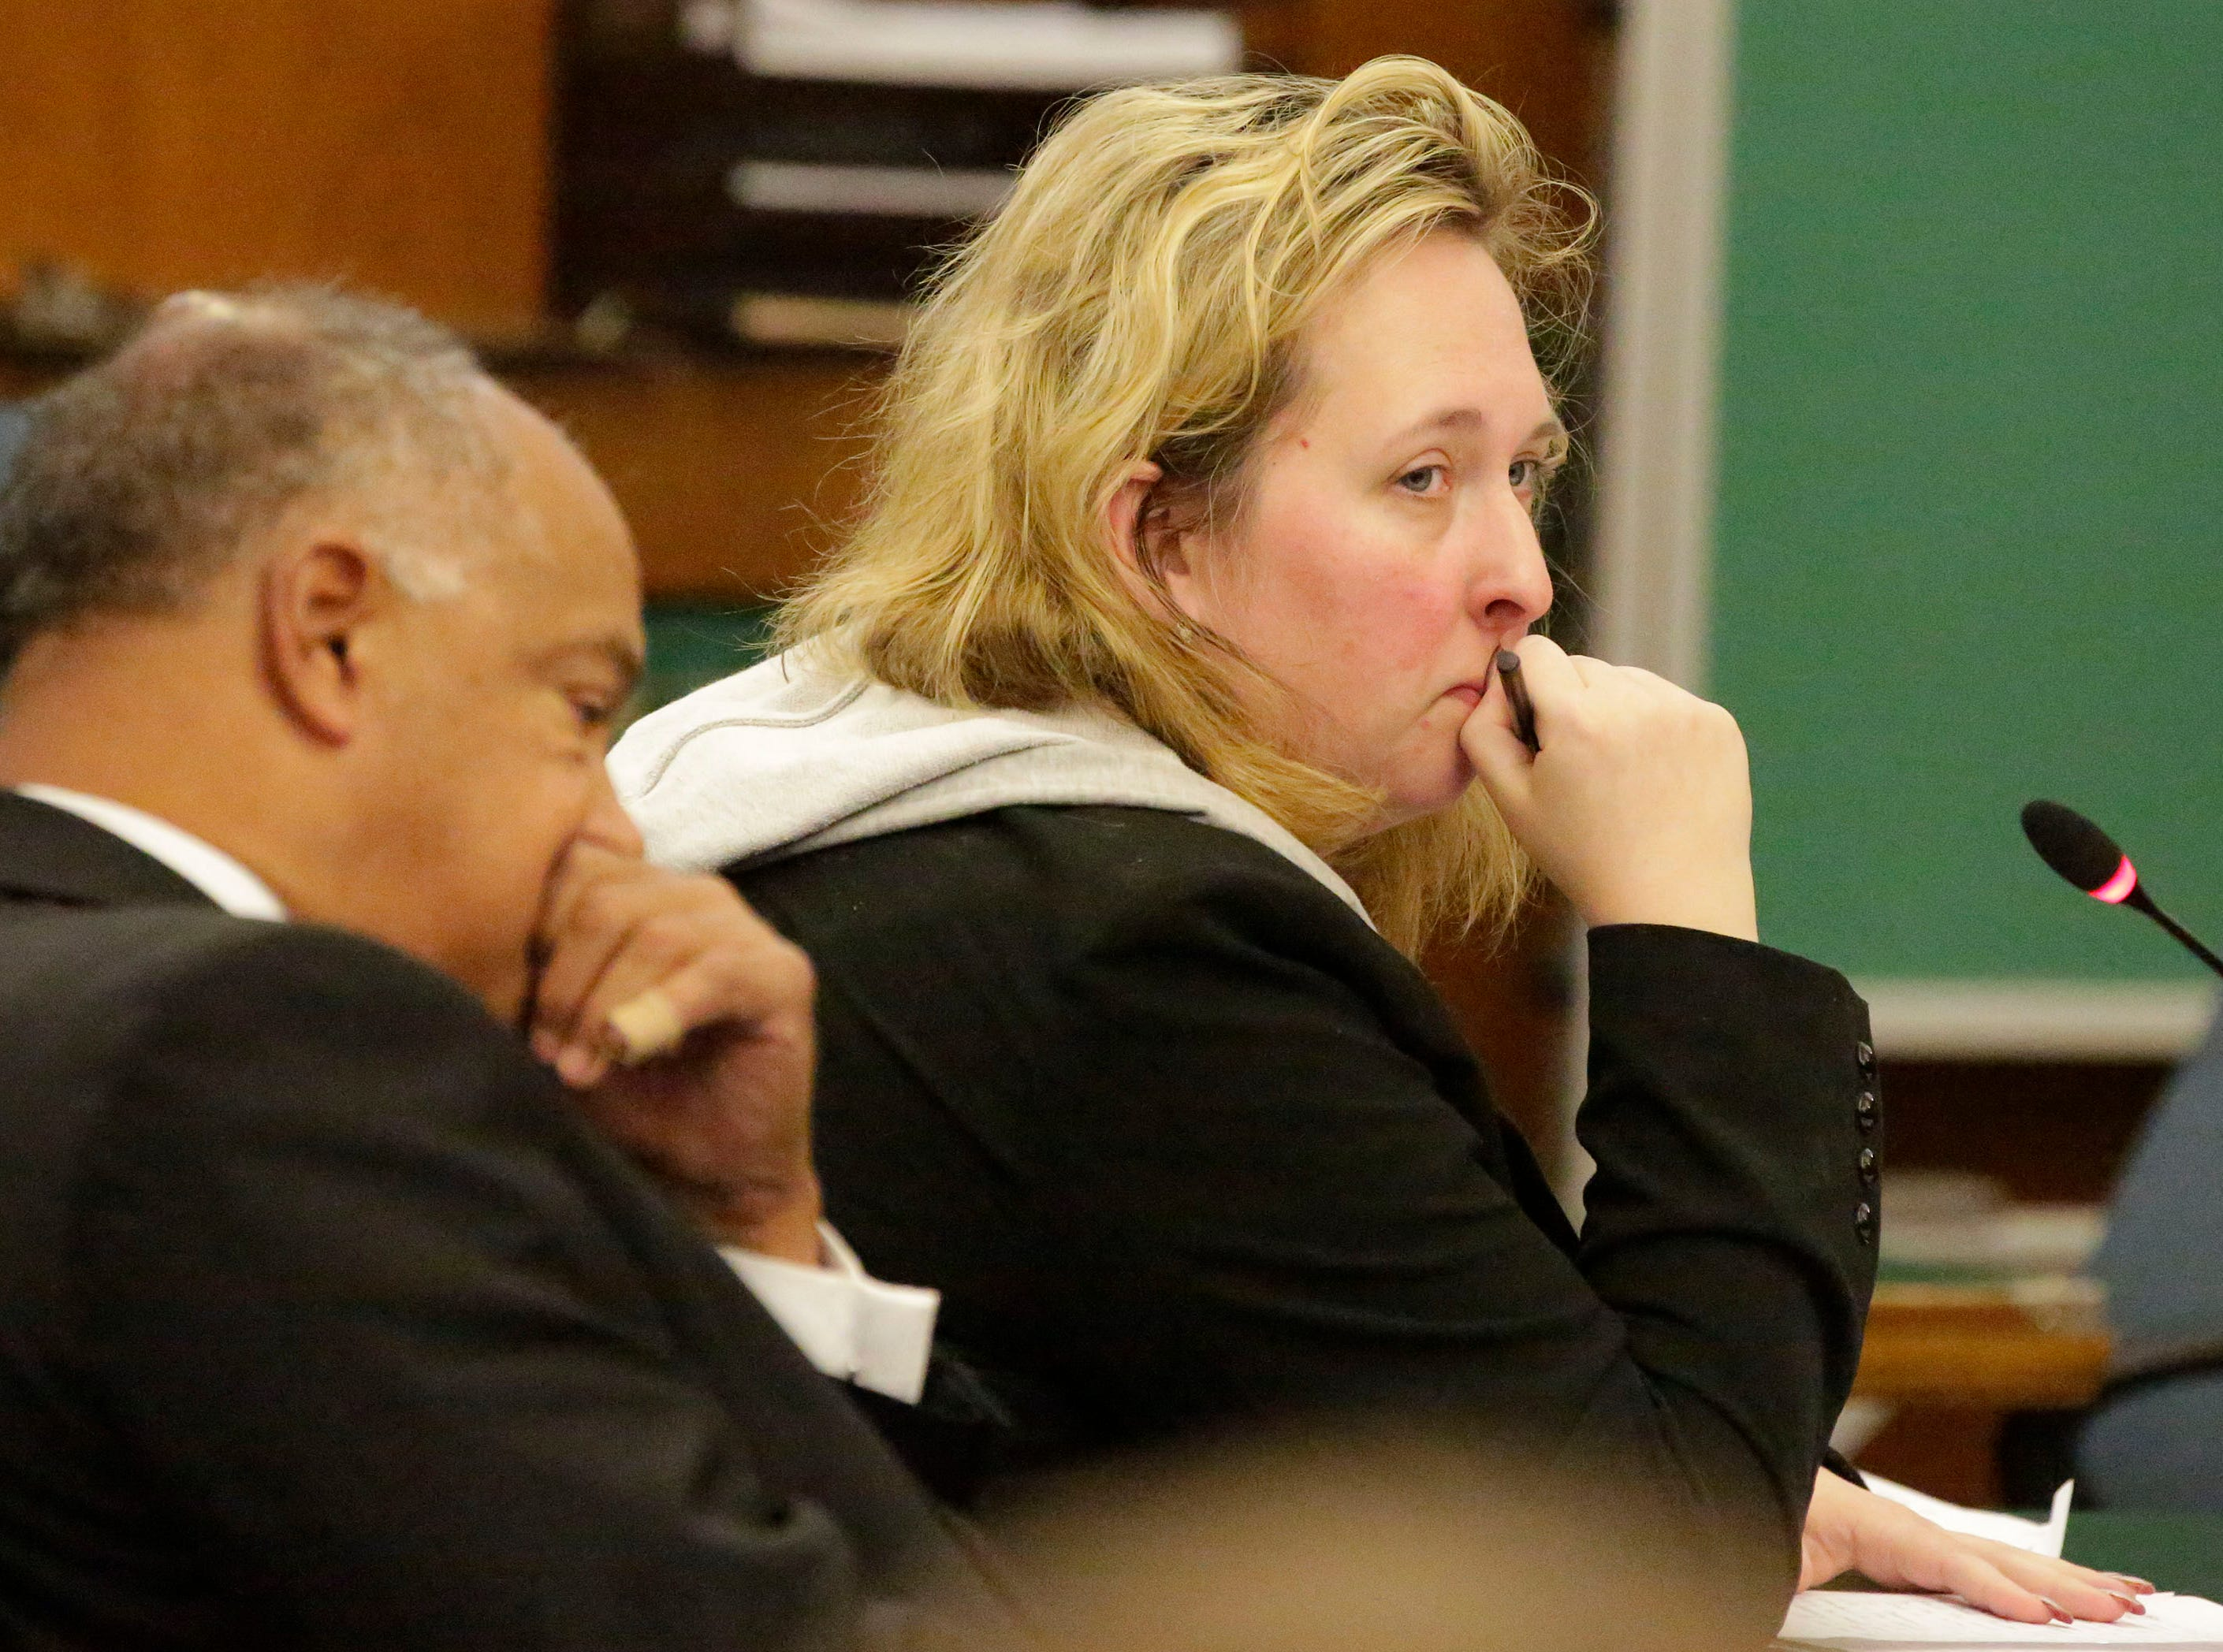 Former Kinship Companions owner Christy Rose Tuchel, right, sits next to her attorney, Gary George, in Sheboygan County Circuit Court Branch 1 during her sentencing hearing, Friday, October 5, 2018, in Sheboygan, Wis.  Tuchel received a 1 year jail sentence and 8 years of probation.